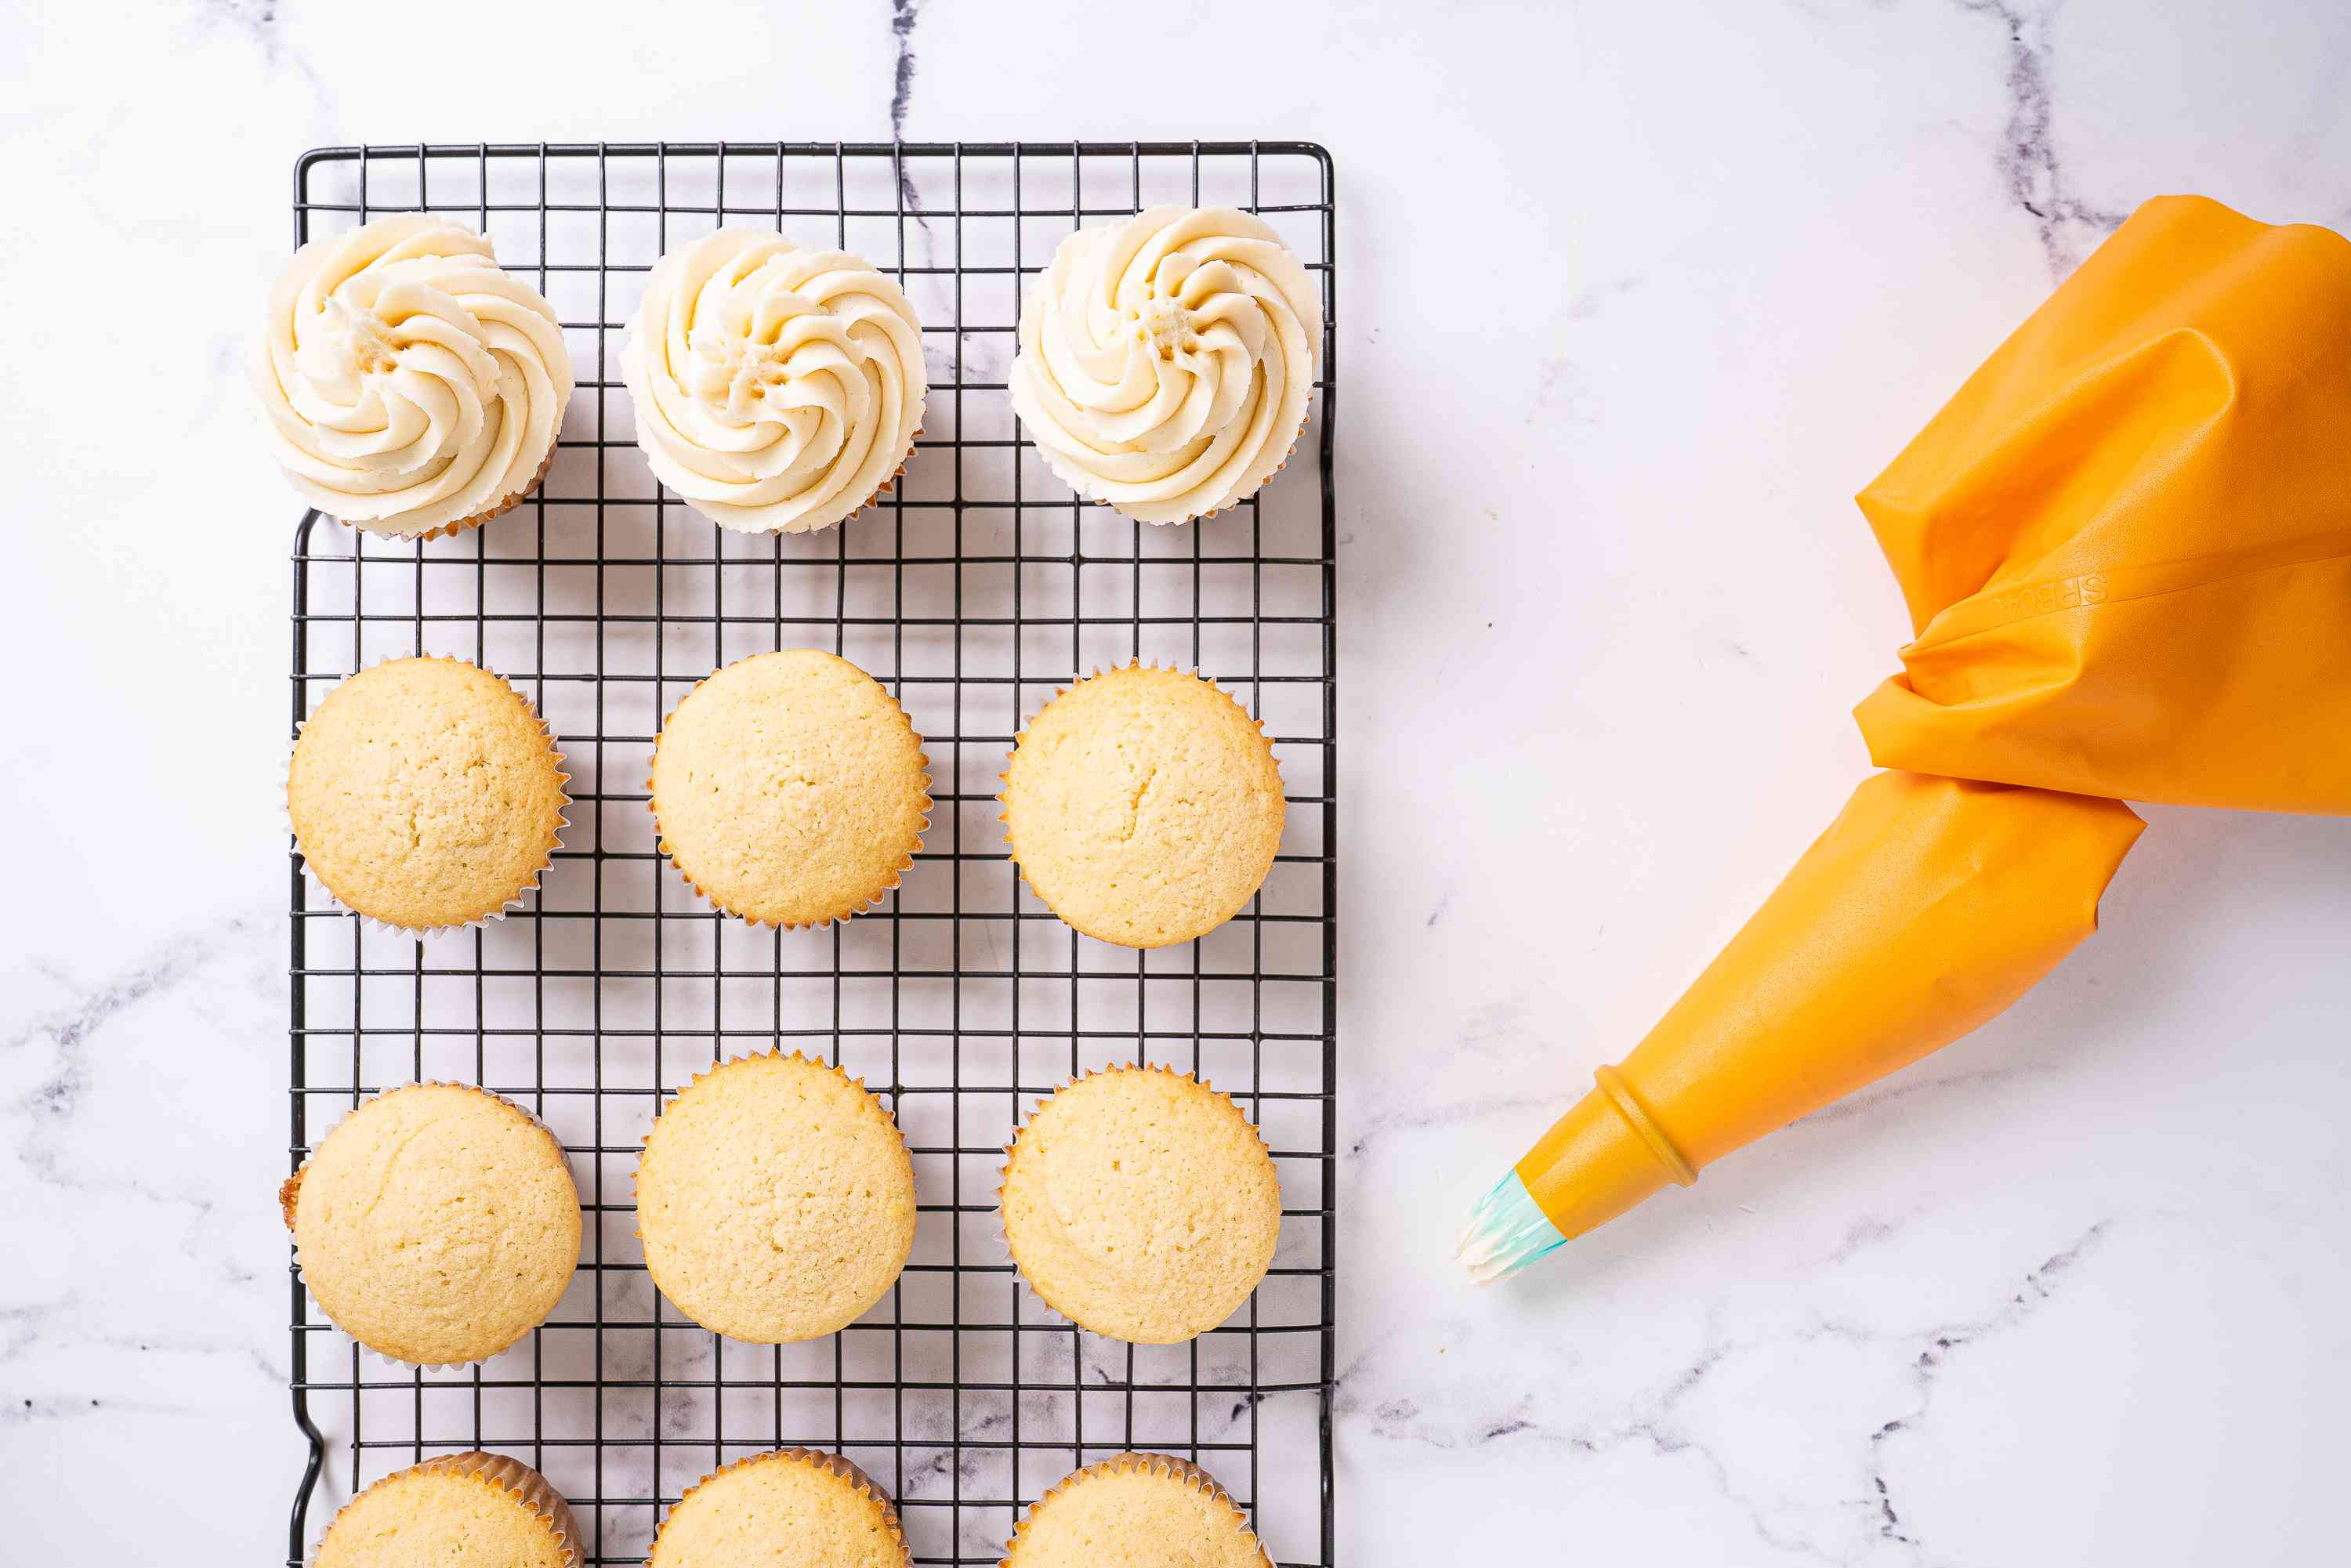 Decorating cupcakes with piping bag